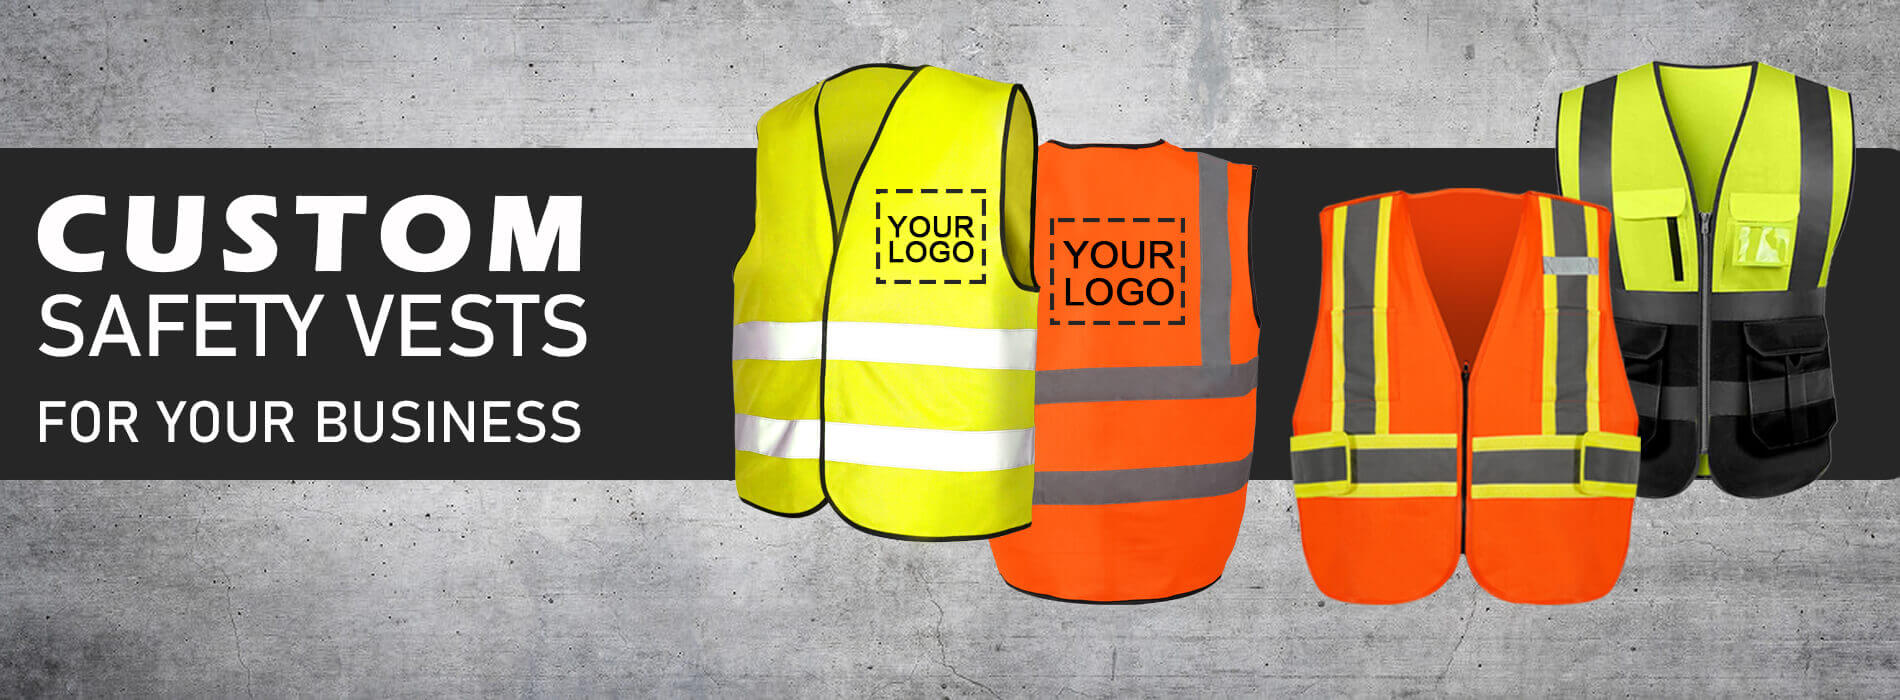 Figure-1-Custom-Safety-Vest